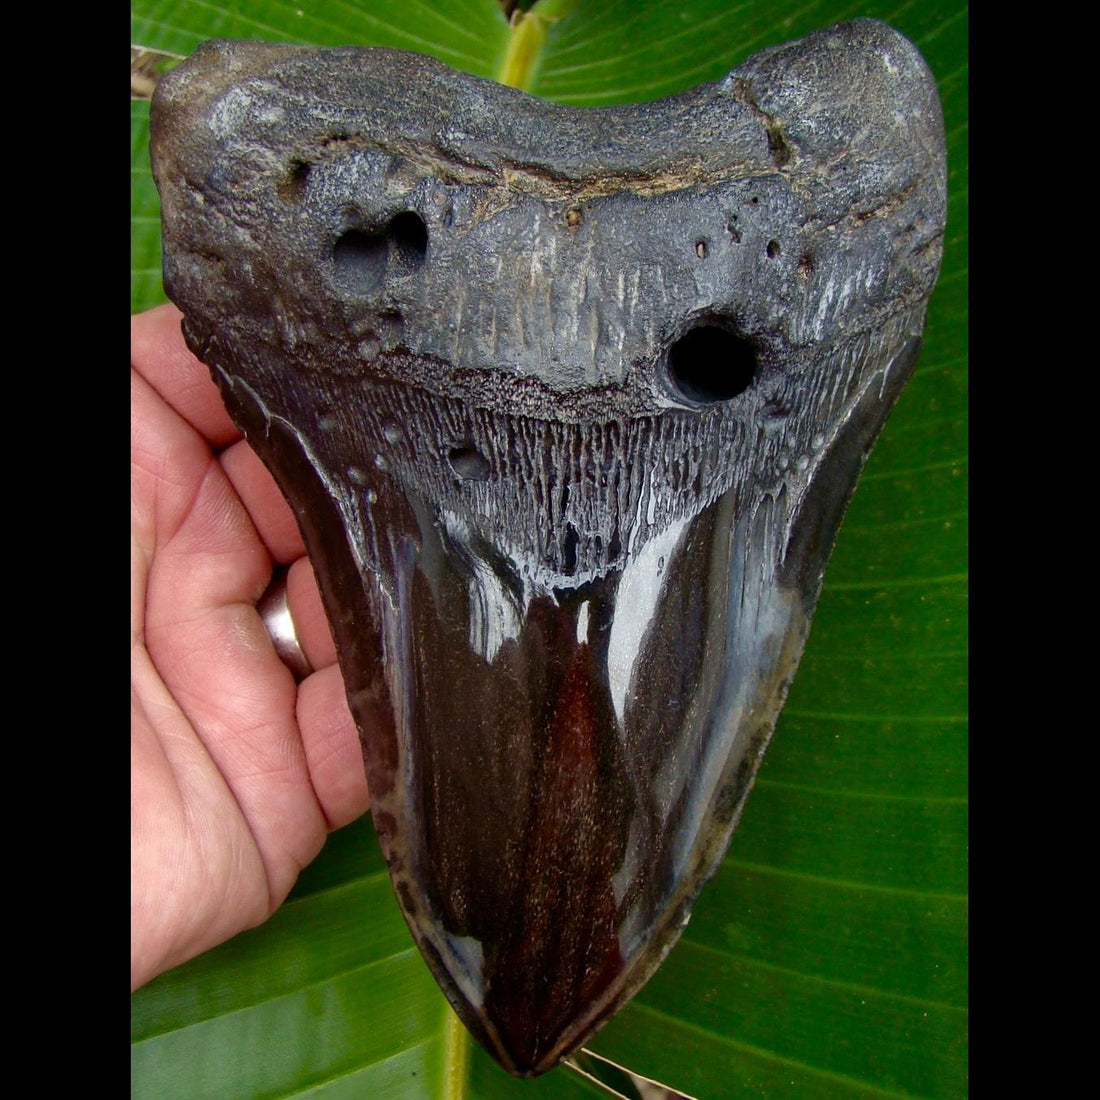 Megalodon Tooth XL 6 & 1/8 in. South Carolina Megalodon Shark Tooth